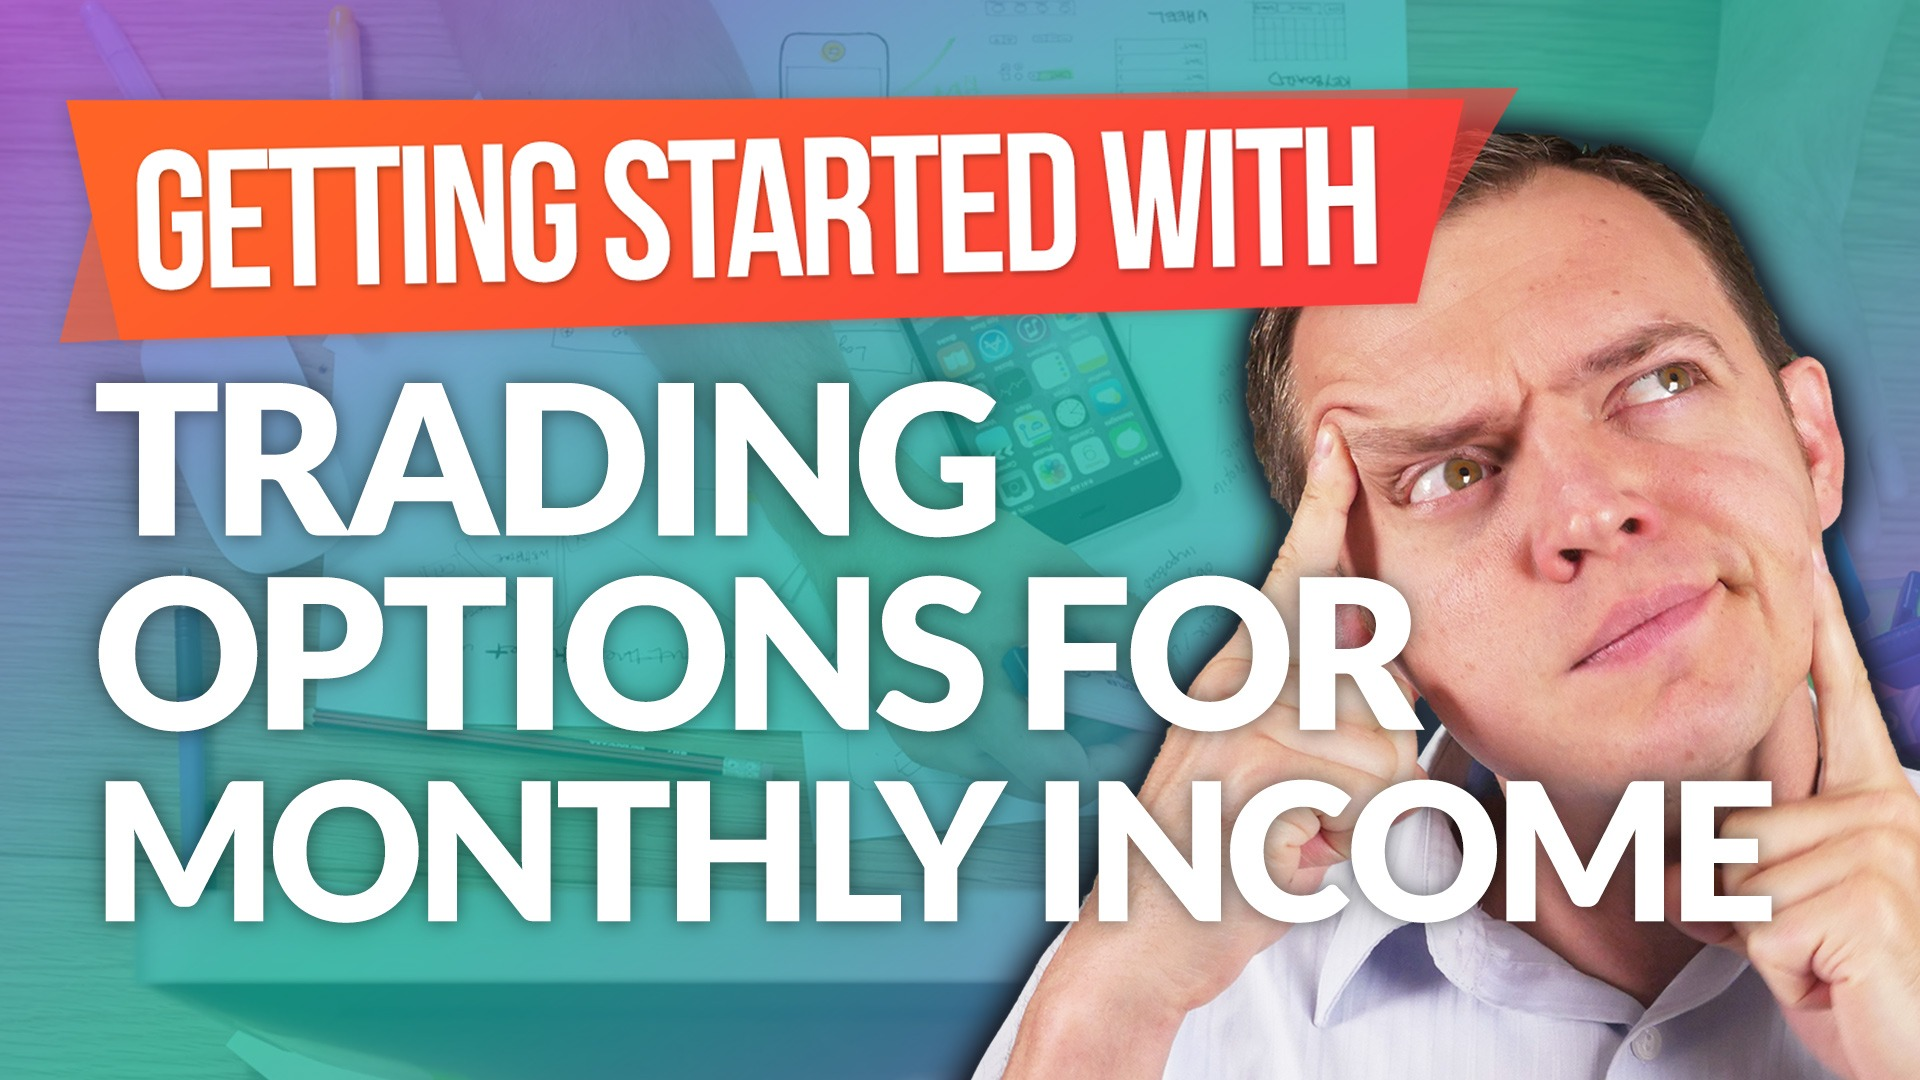 How to Get Started with Trading Options for Monthly Income